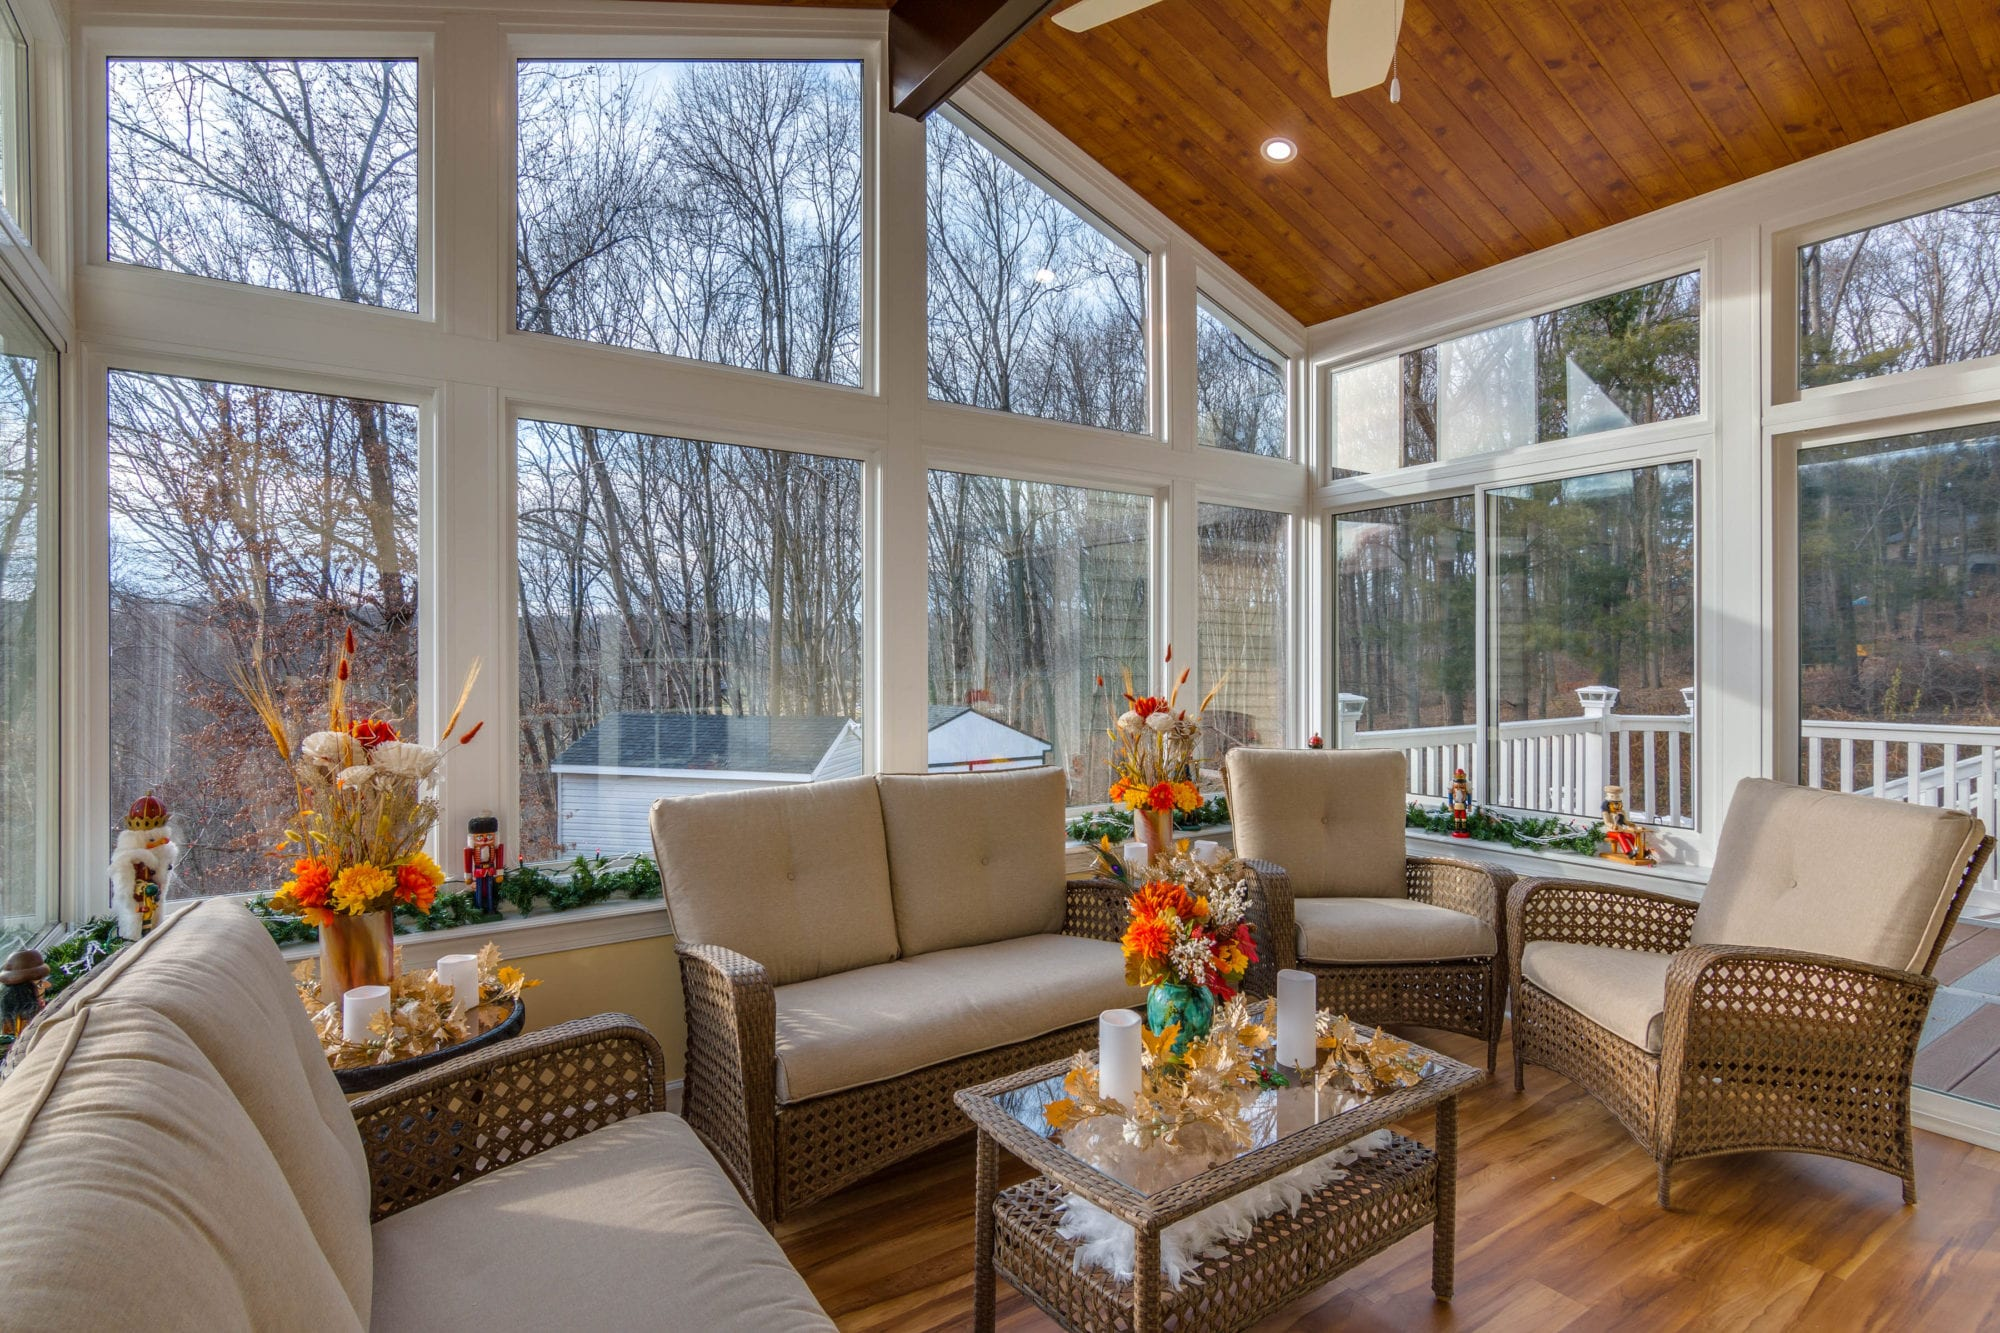 Living Space Sunrooms and Patio Enclosures in Maryland on Living Room Deck id=80685